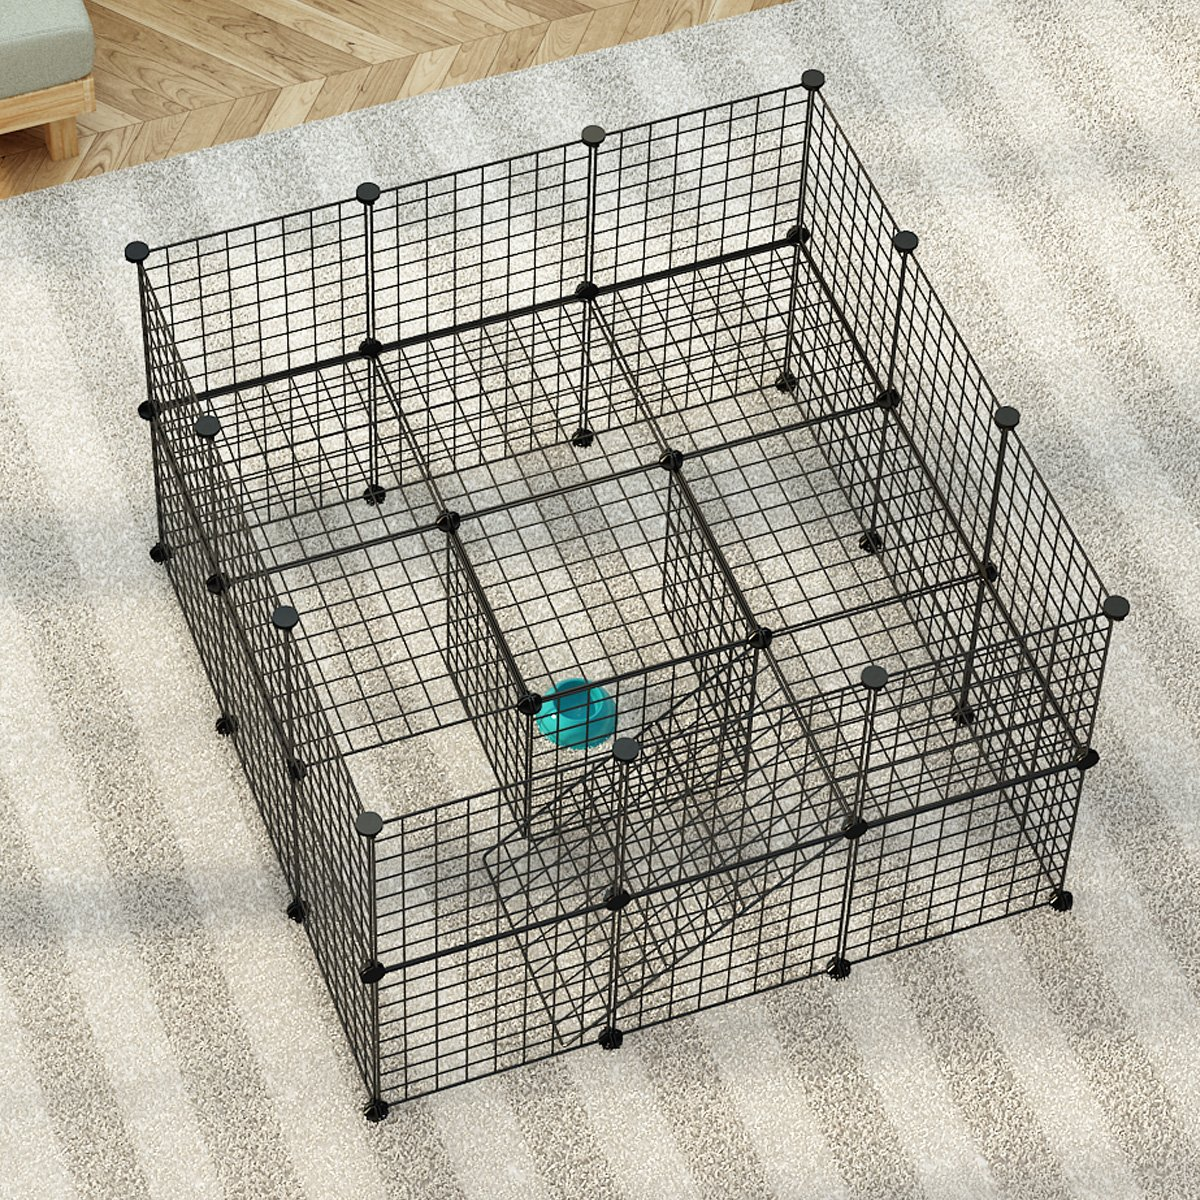 JYYG Small Pet Pen Bunny Cage Dogs Playpen Indoor Out Door Animal Fence Puppy Guinea Pigs, Dwarf Rabbits PET-F (36 Panels, Black) by JYYG (Image #3)